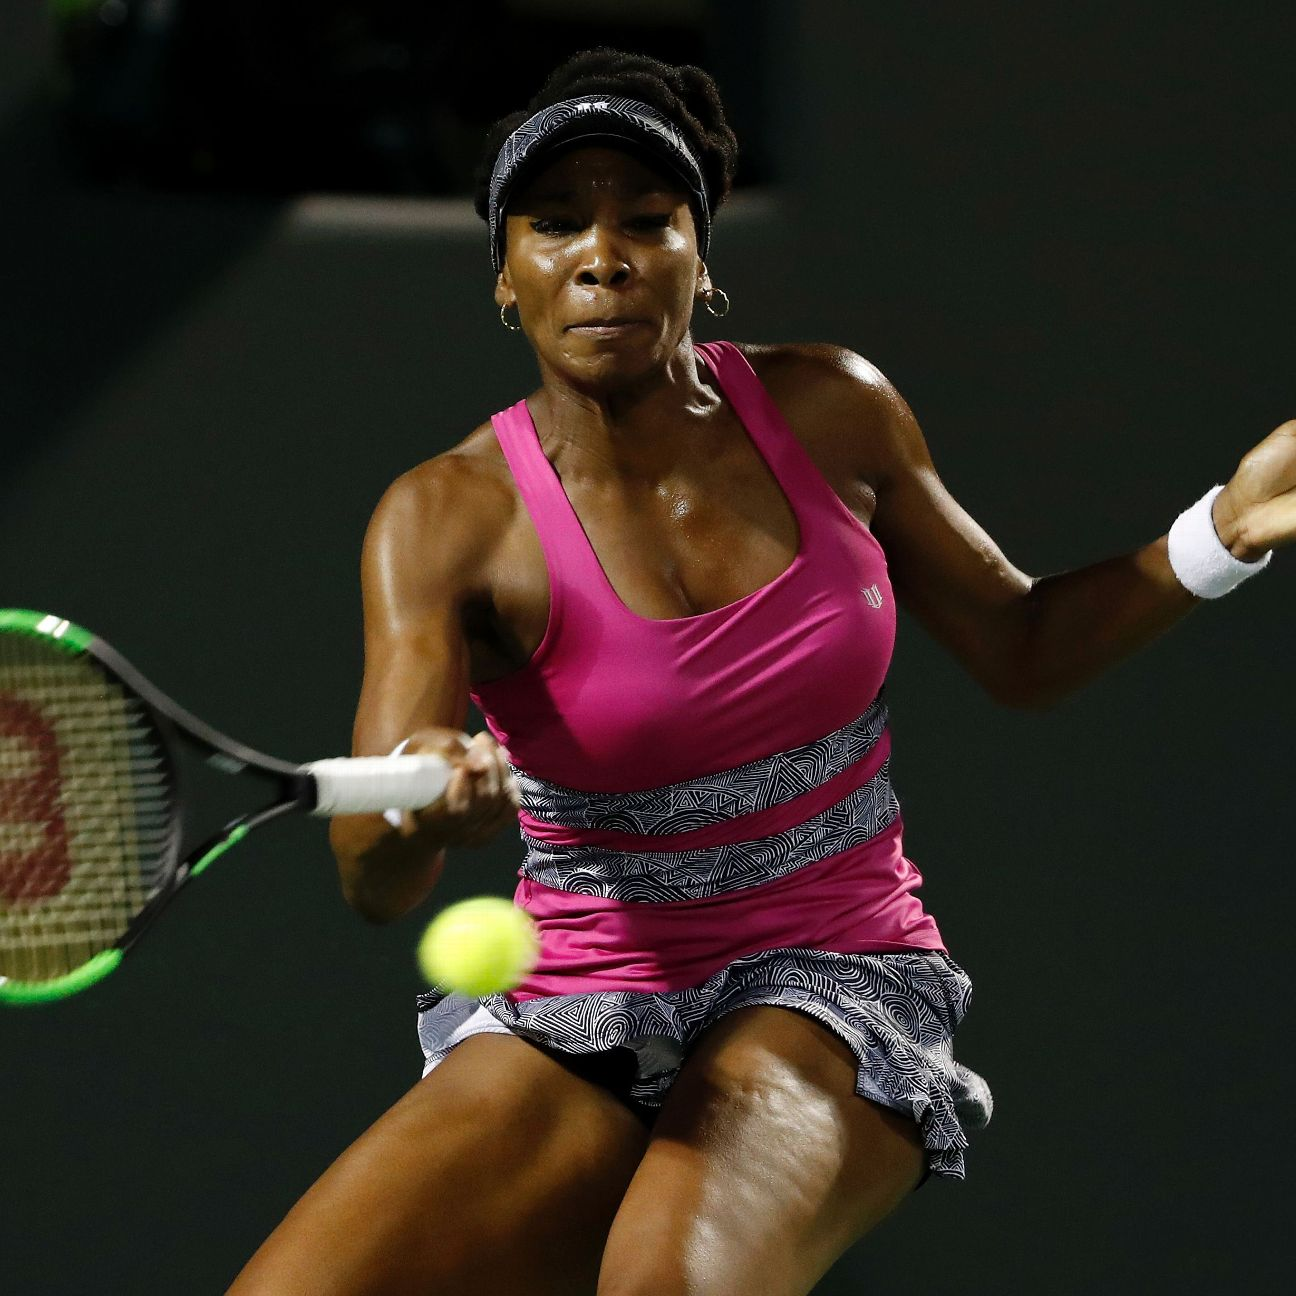 miami open tennis it took time but johanna konta eventually exploited venus wiliams 39 weakness. Black Bedroom Furniture Sets. Home Design Ideas